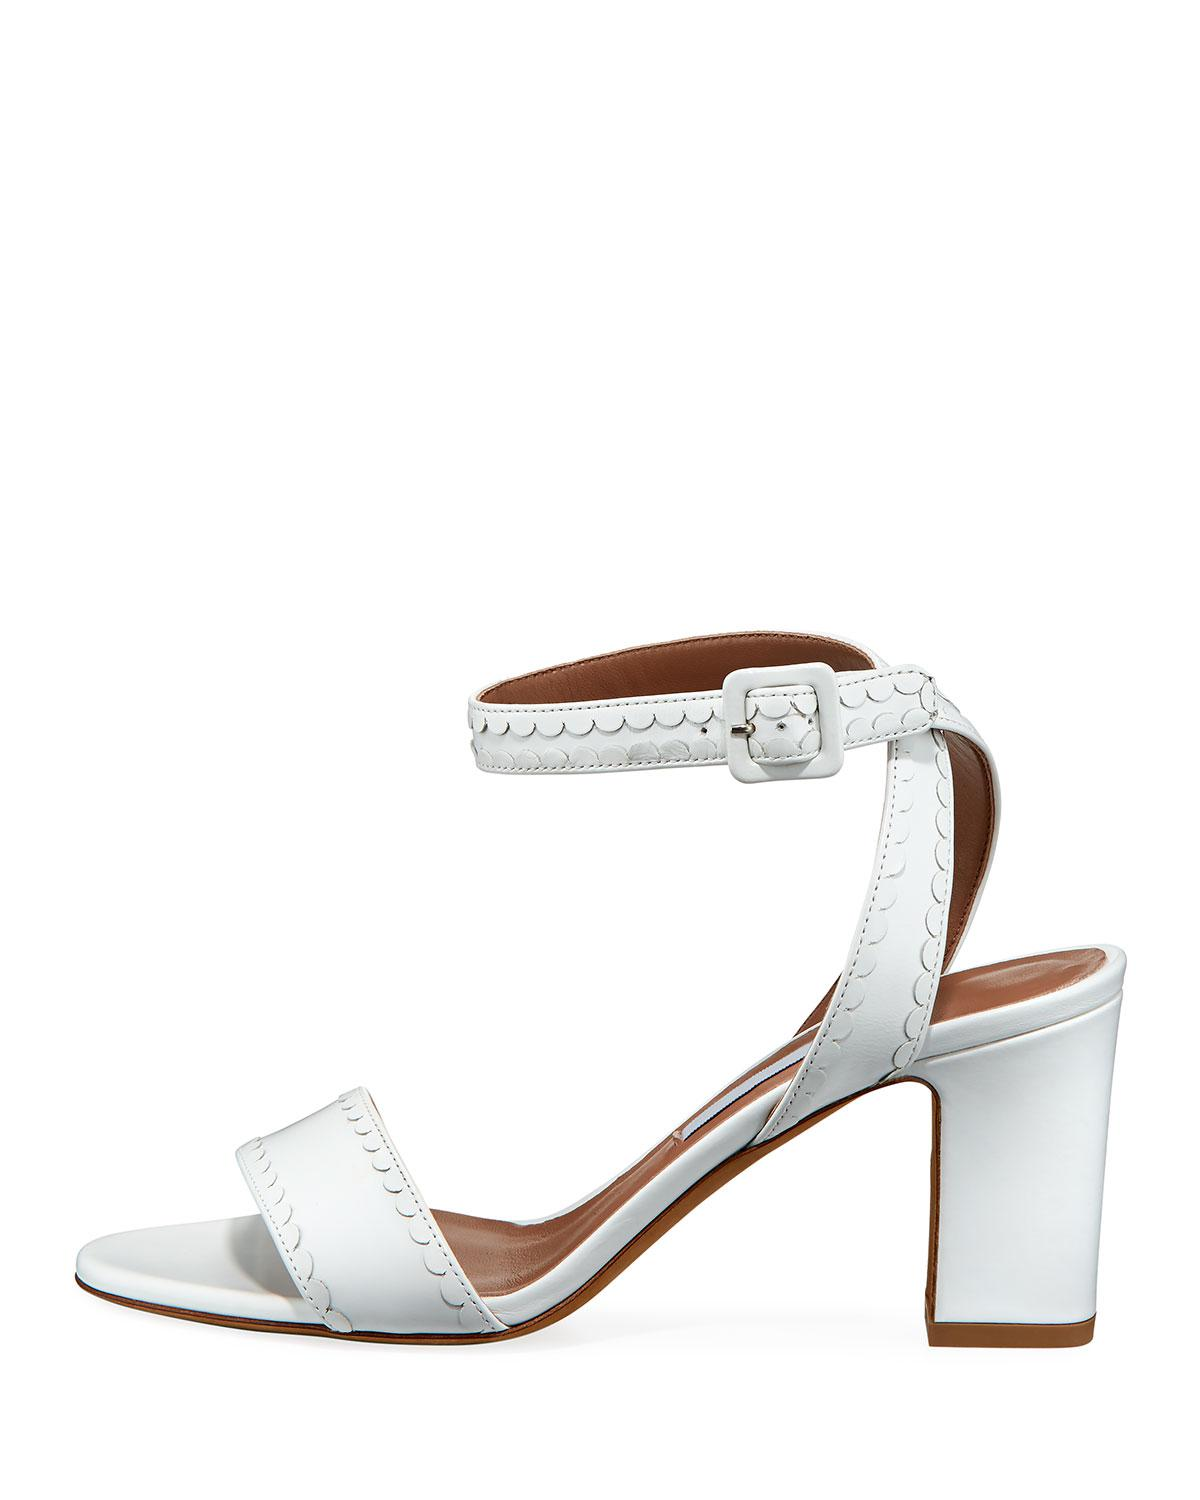 e69d077a047 Lyst - Tabitha Simmons Leticia Frill Leather Sandals in White